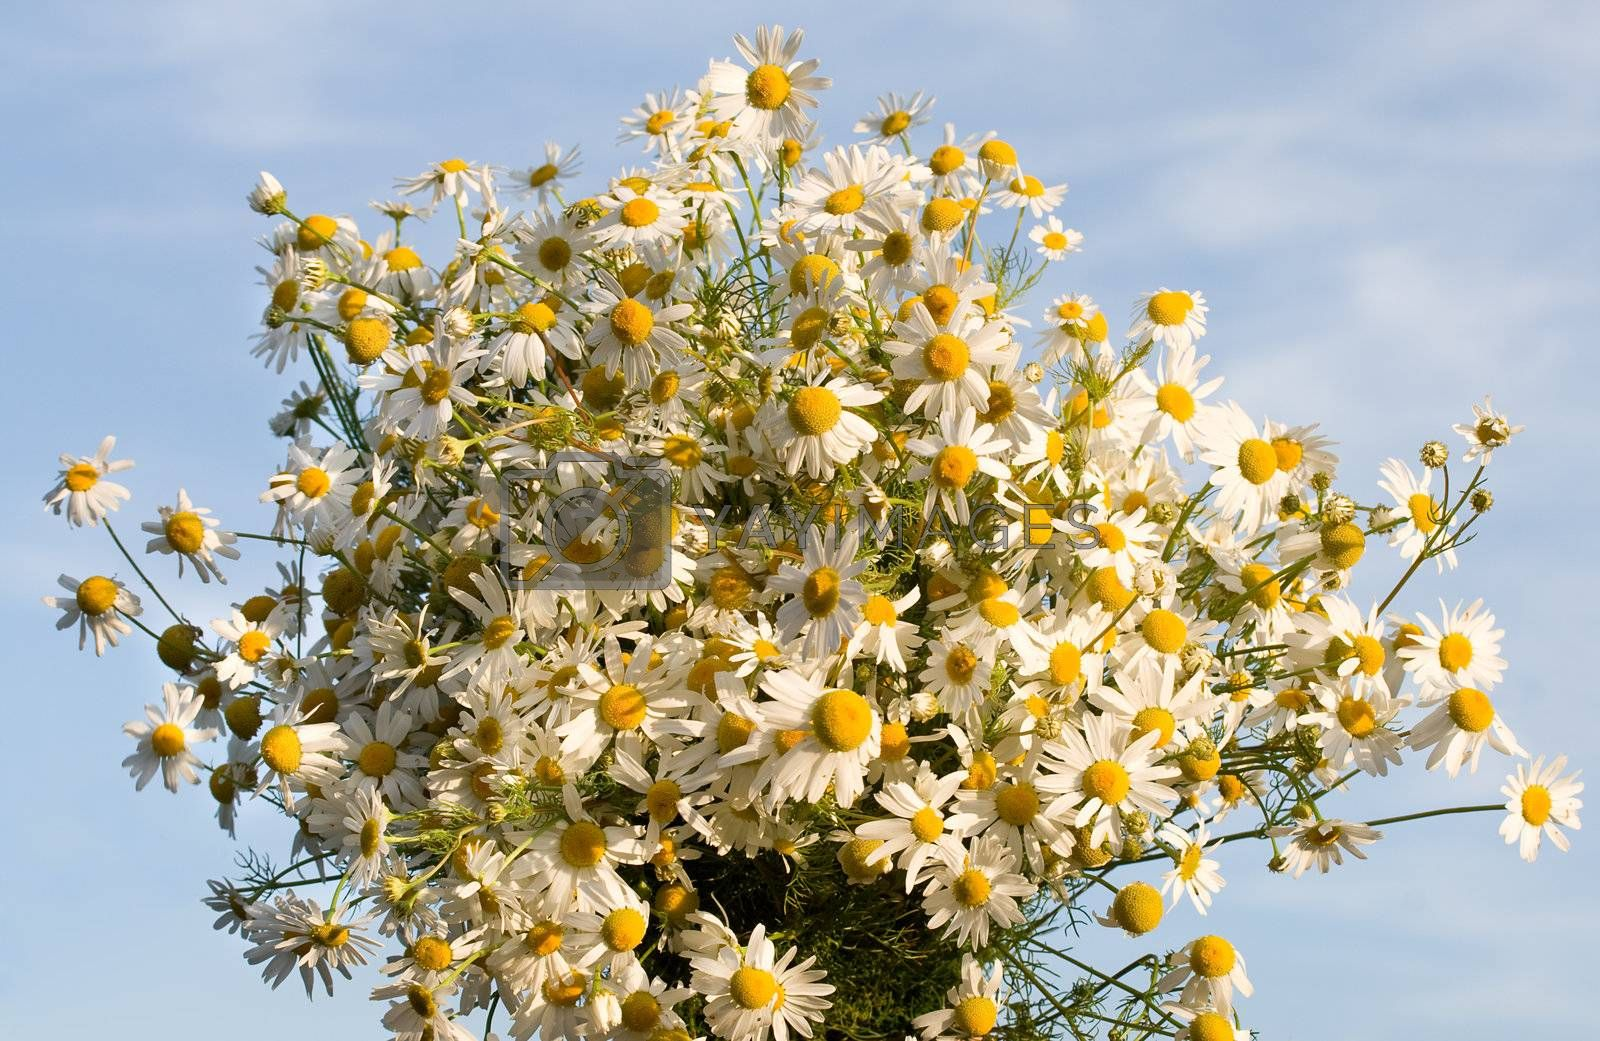 chamomile bouquet against a blue sky background